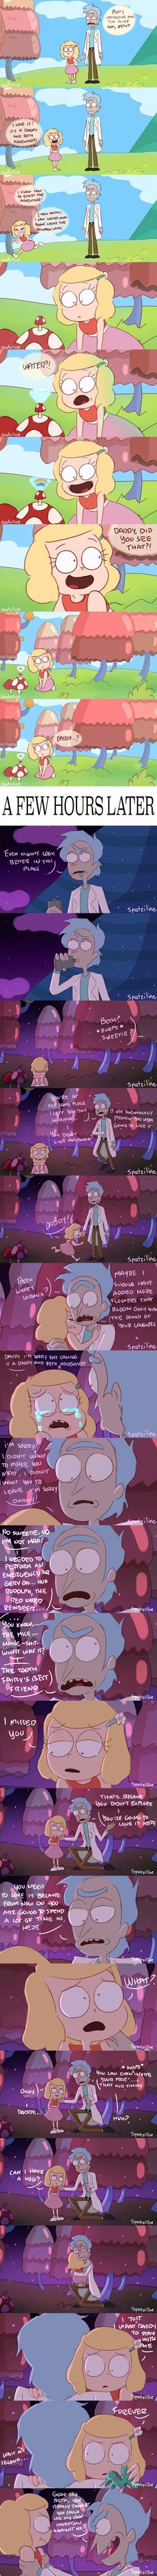 """""""There never was a Daddy and Beth adventure"""" - Beth Smith - Rick Sanchez - Rick and Morty - season 3 - """"The ABC of Beth"""" - fanart / art - comic"""